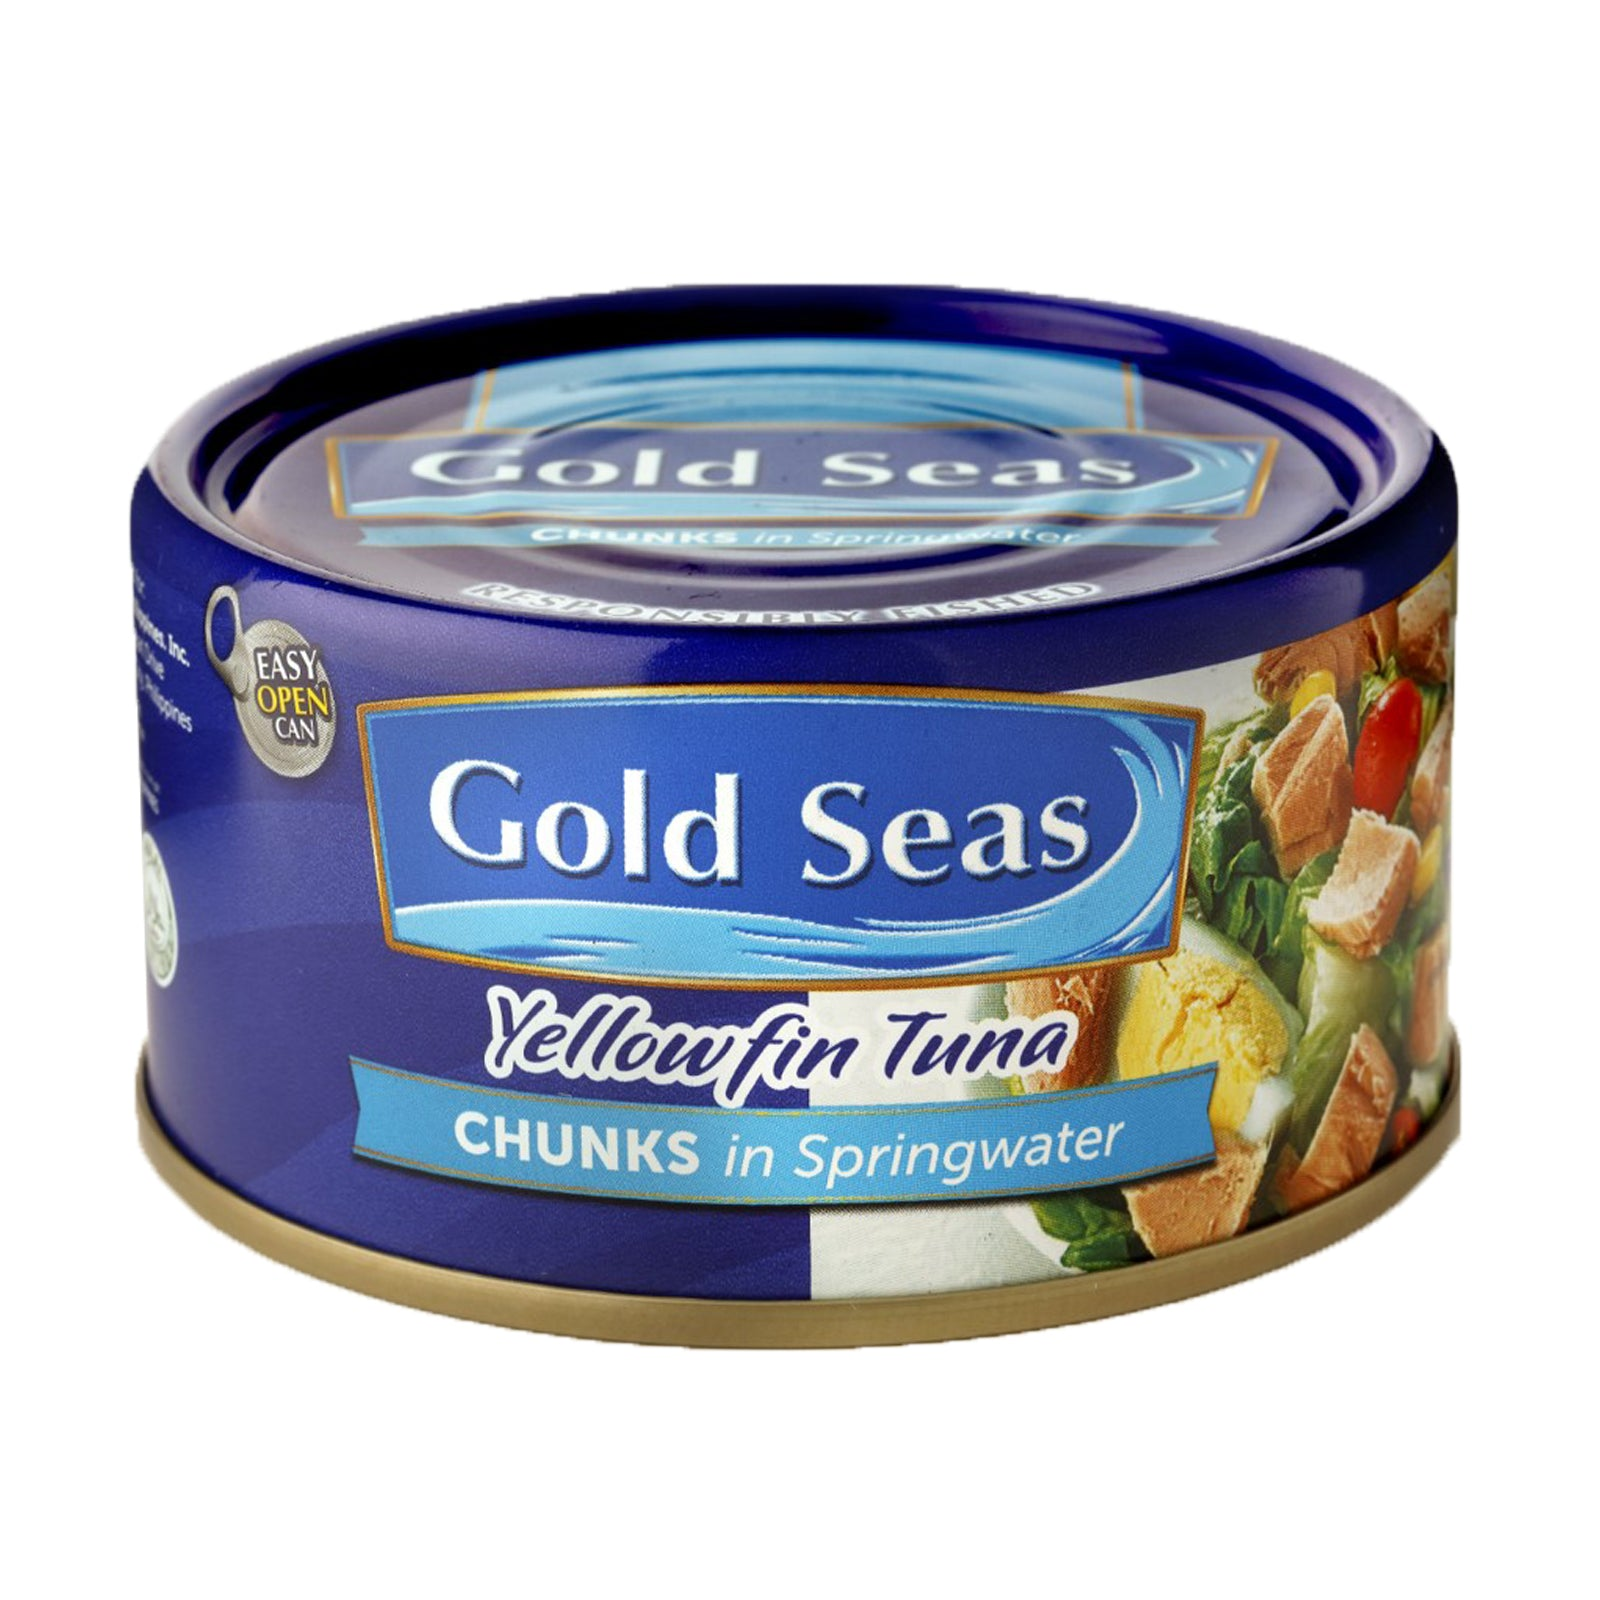 Yellowfin Tuna Chunks in Springwater (90g/185g)